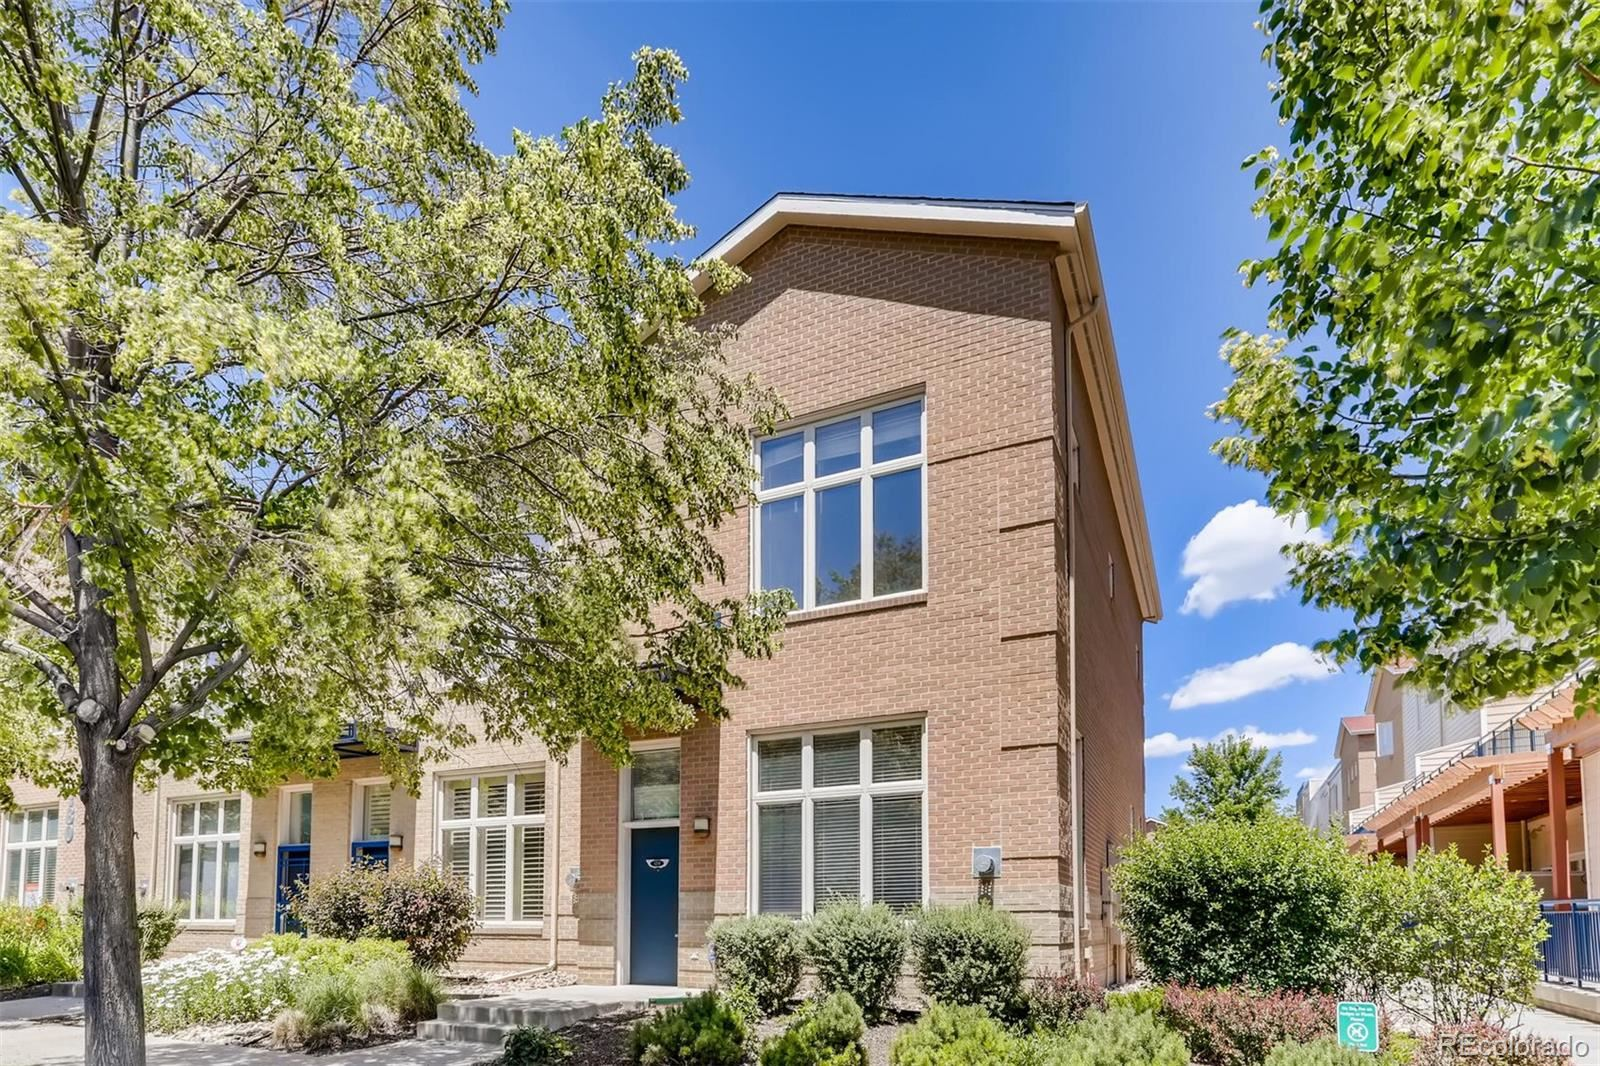 180 Roslyn Street #1201, Denver, CO 80230 - #: 5275655